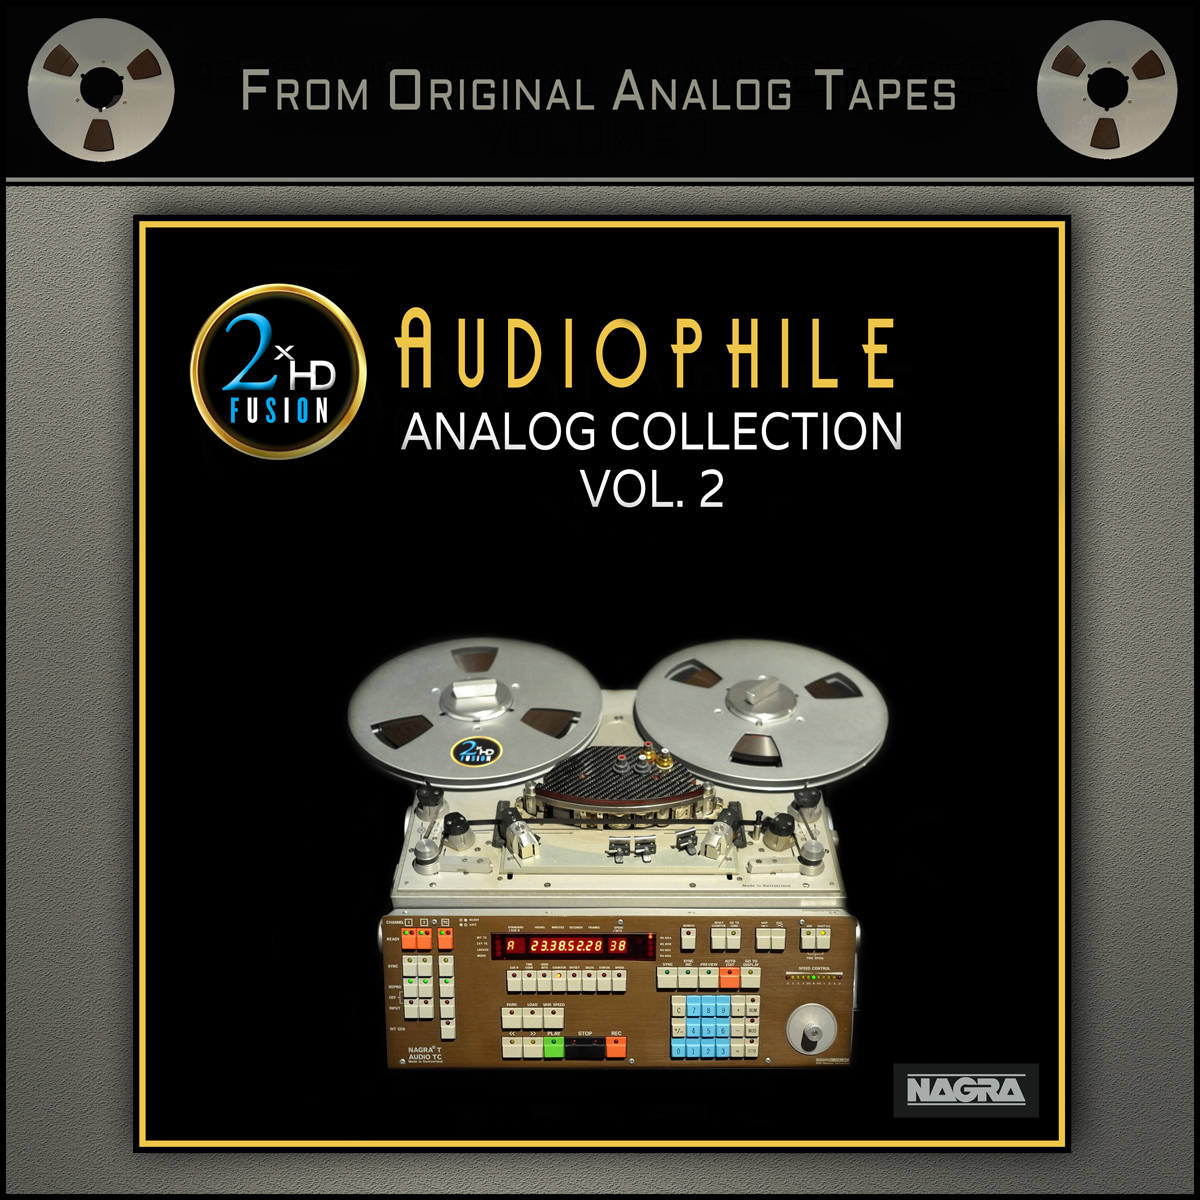 Audiophile Analog Collection Vol. 2 Master Quality Reel To Reel Tape